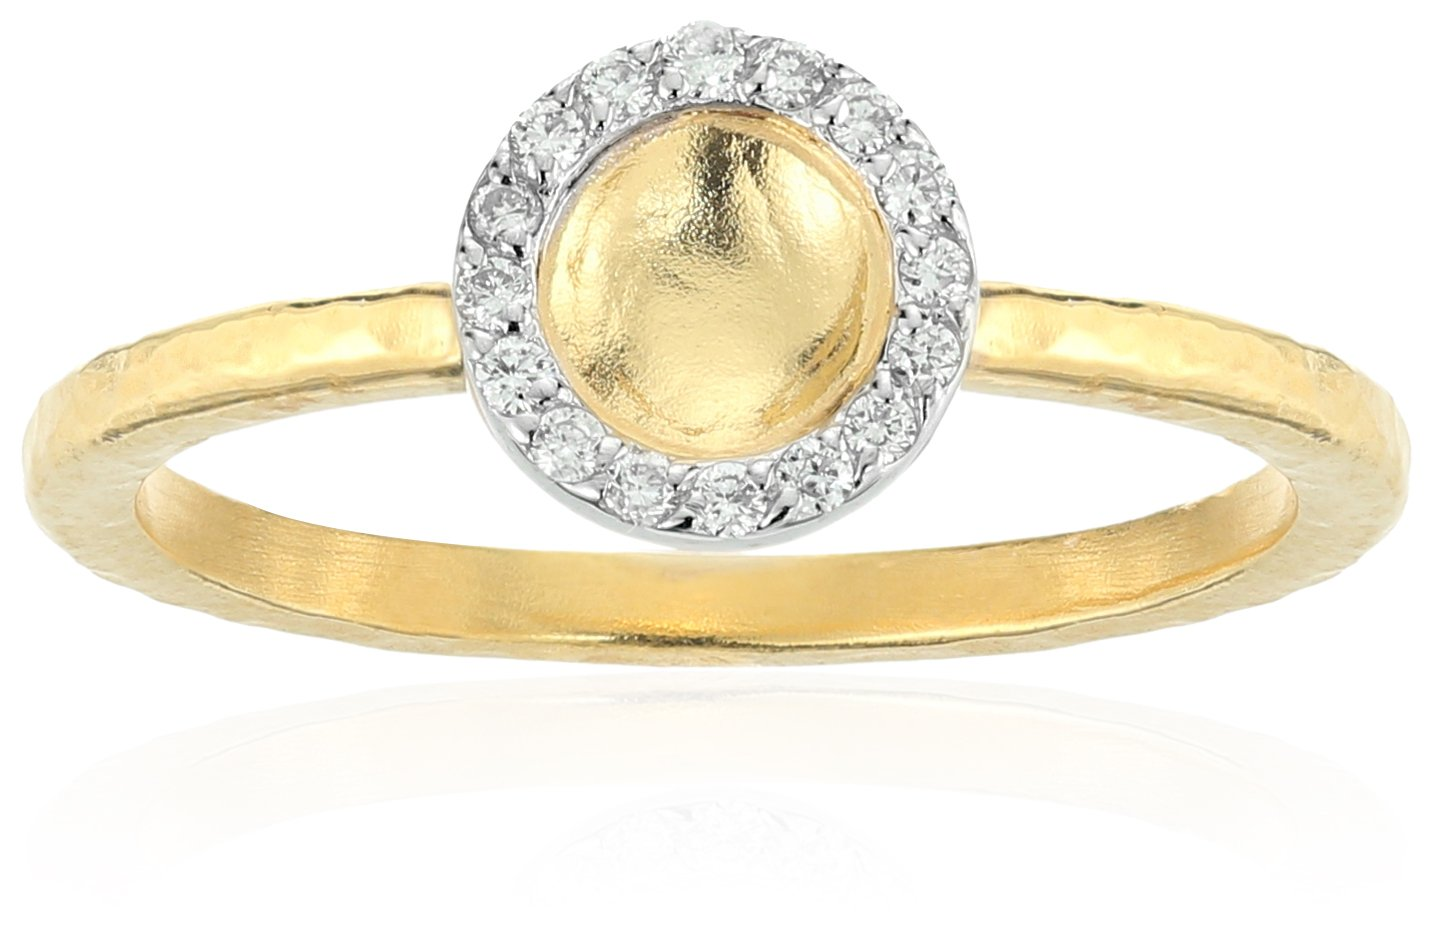 GURHAN Hourglass Diamond Gold Small Round Diamond Pave Ring, Size 6.5 by Gurhan